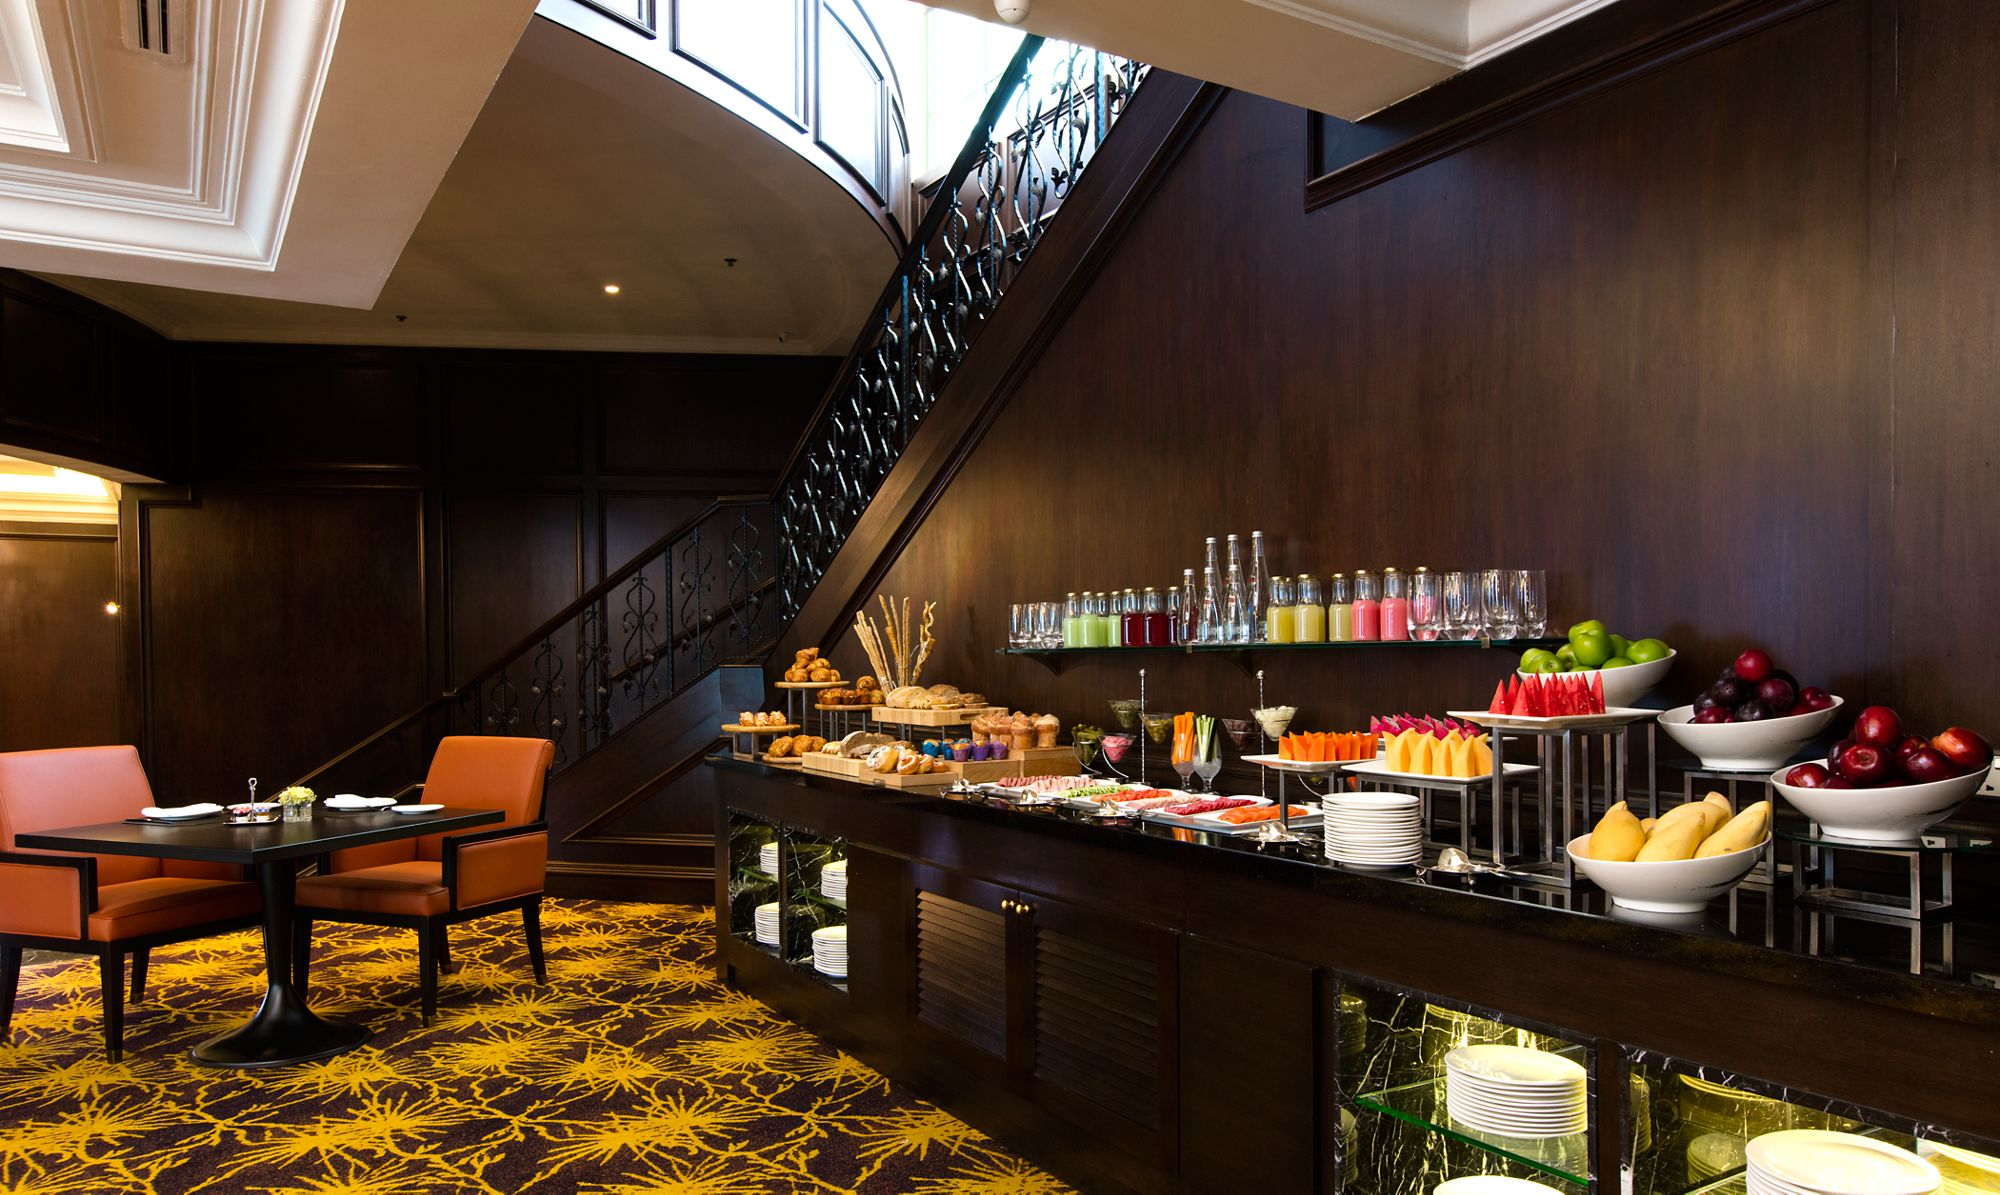 Colorful buffet of fruits, juices and more along a dark wood shelf with seating and a staircase in the background